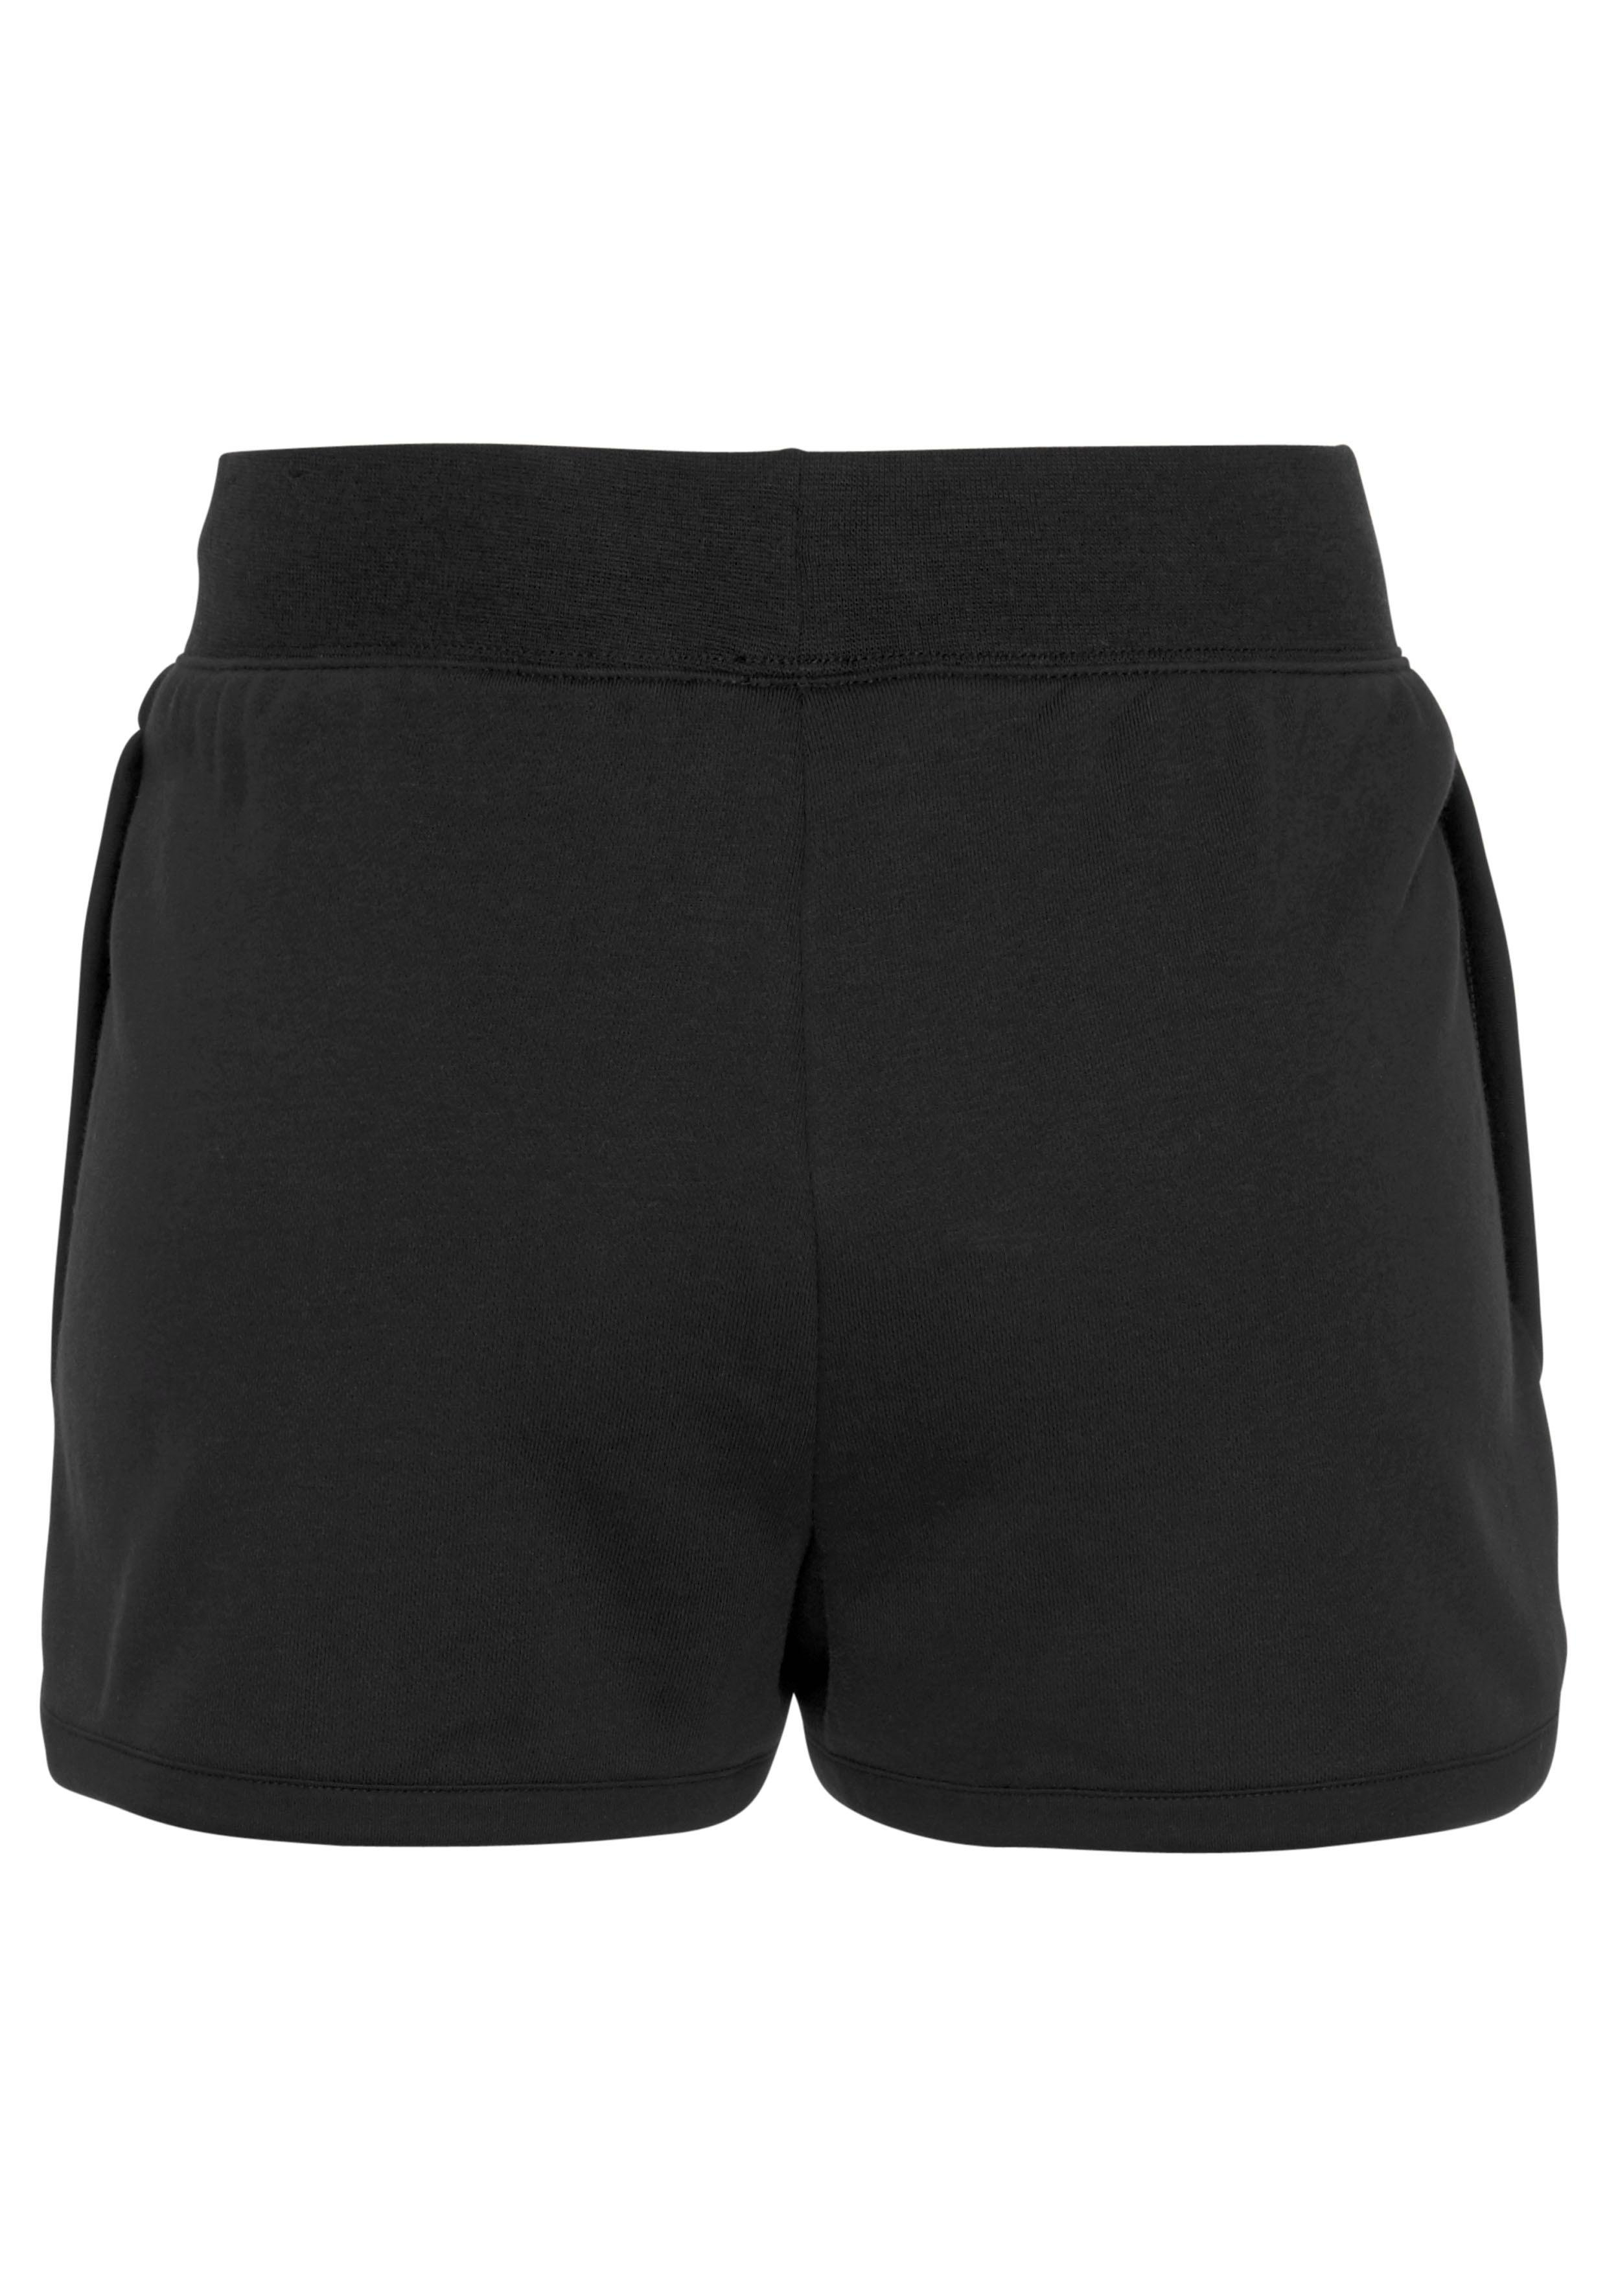 Air Flc Shortw Nsw Koop Sportswear Short Je Bij Nike tQdCBorhxs